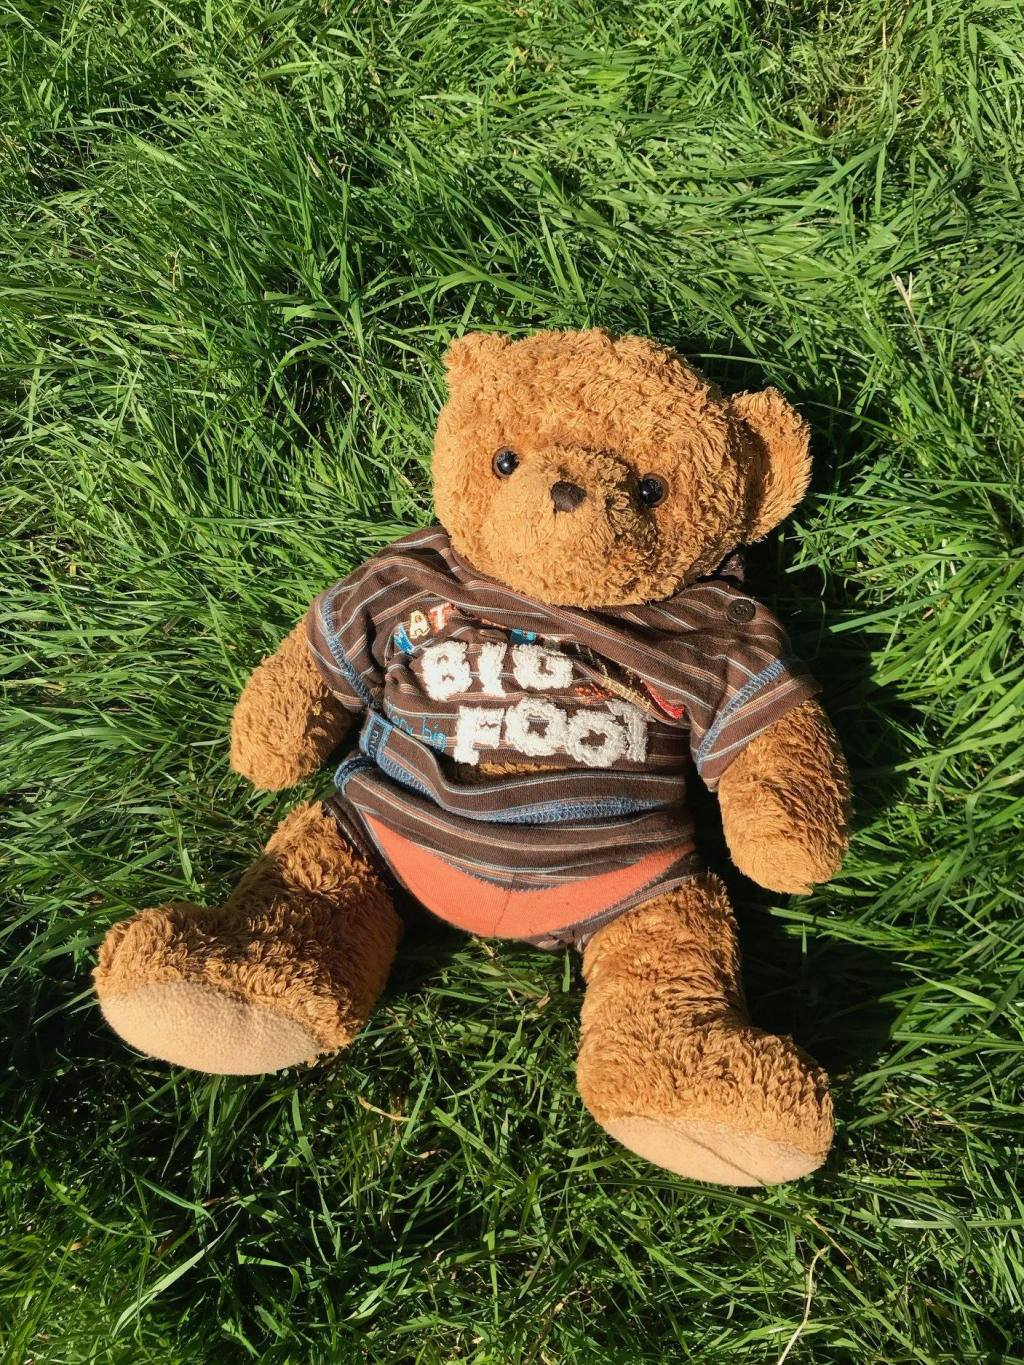 UPDATE - we're delighted to say Charlie's owner has been located. What an emotio...